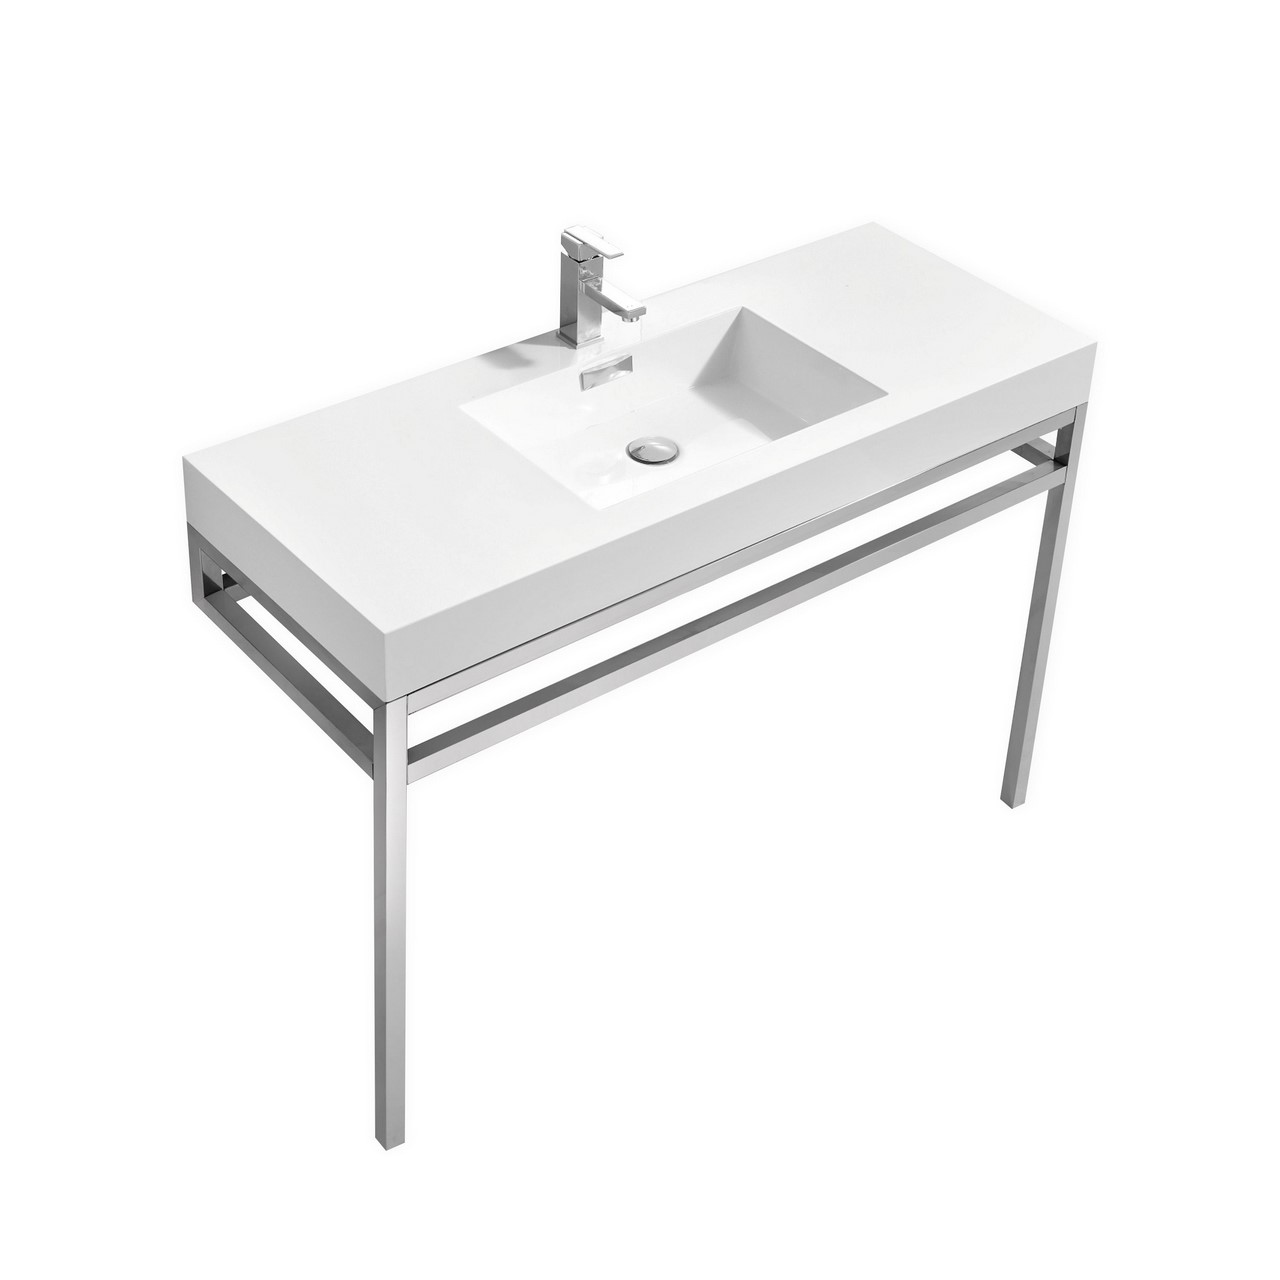 "Modern Lux 48"" Stainless Steel Console w/ White Acrylic Sink - Chrome"